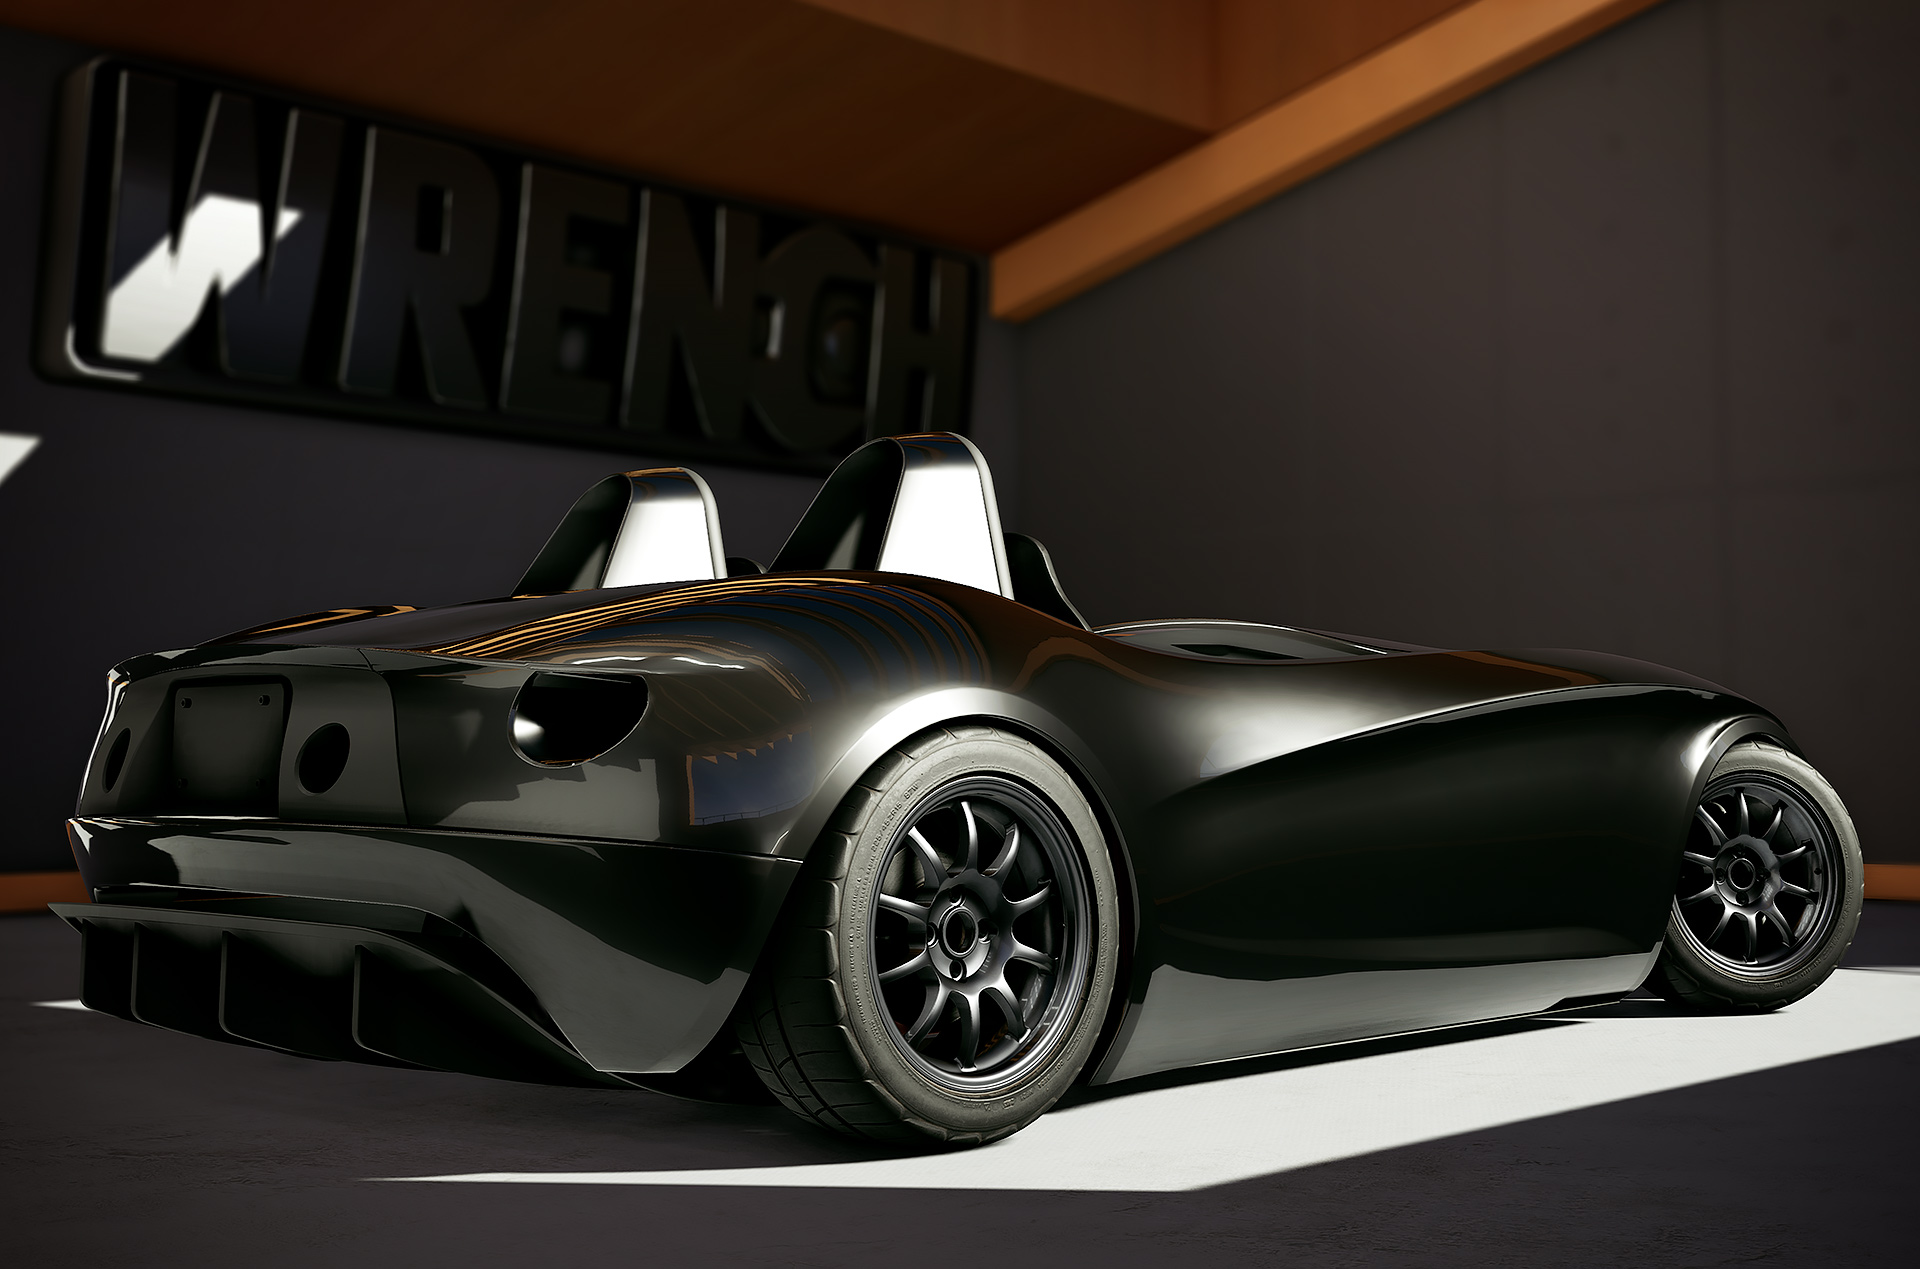 Wrench Will Let You Build Out A Car In Virtual Reality